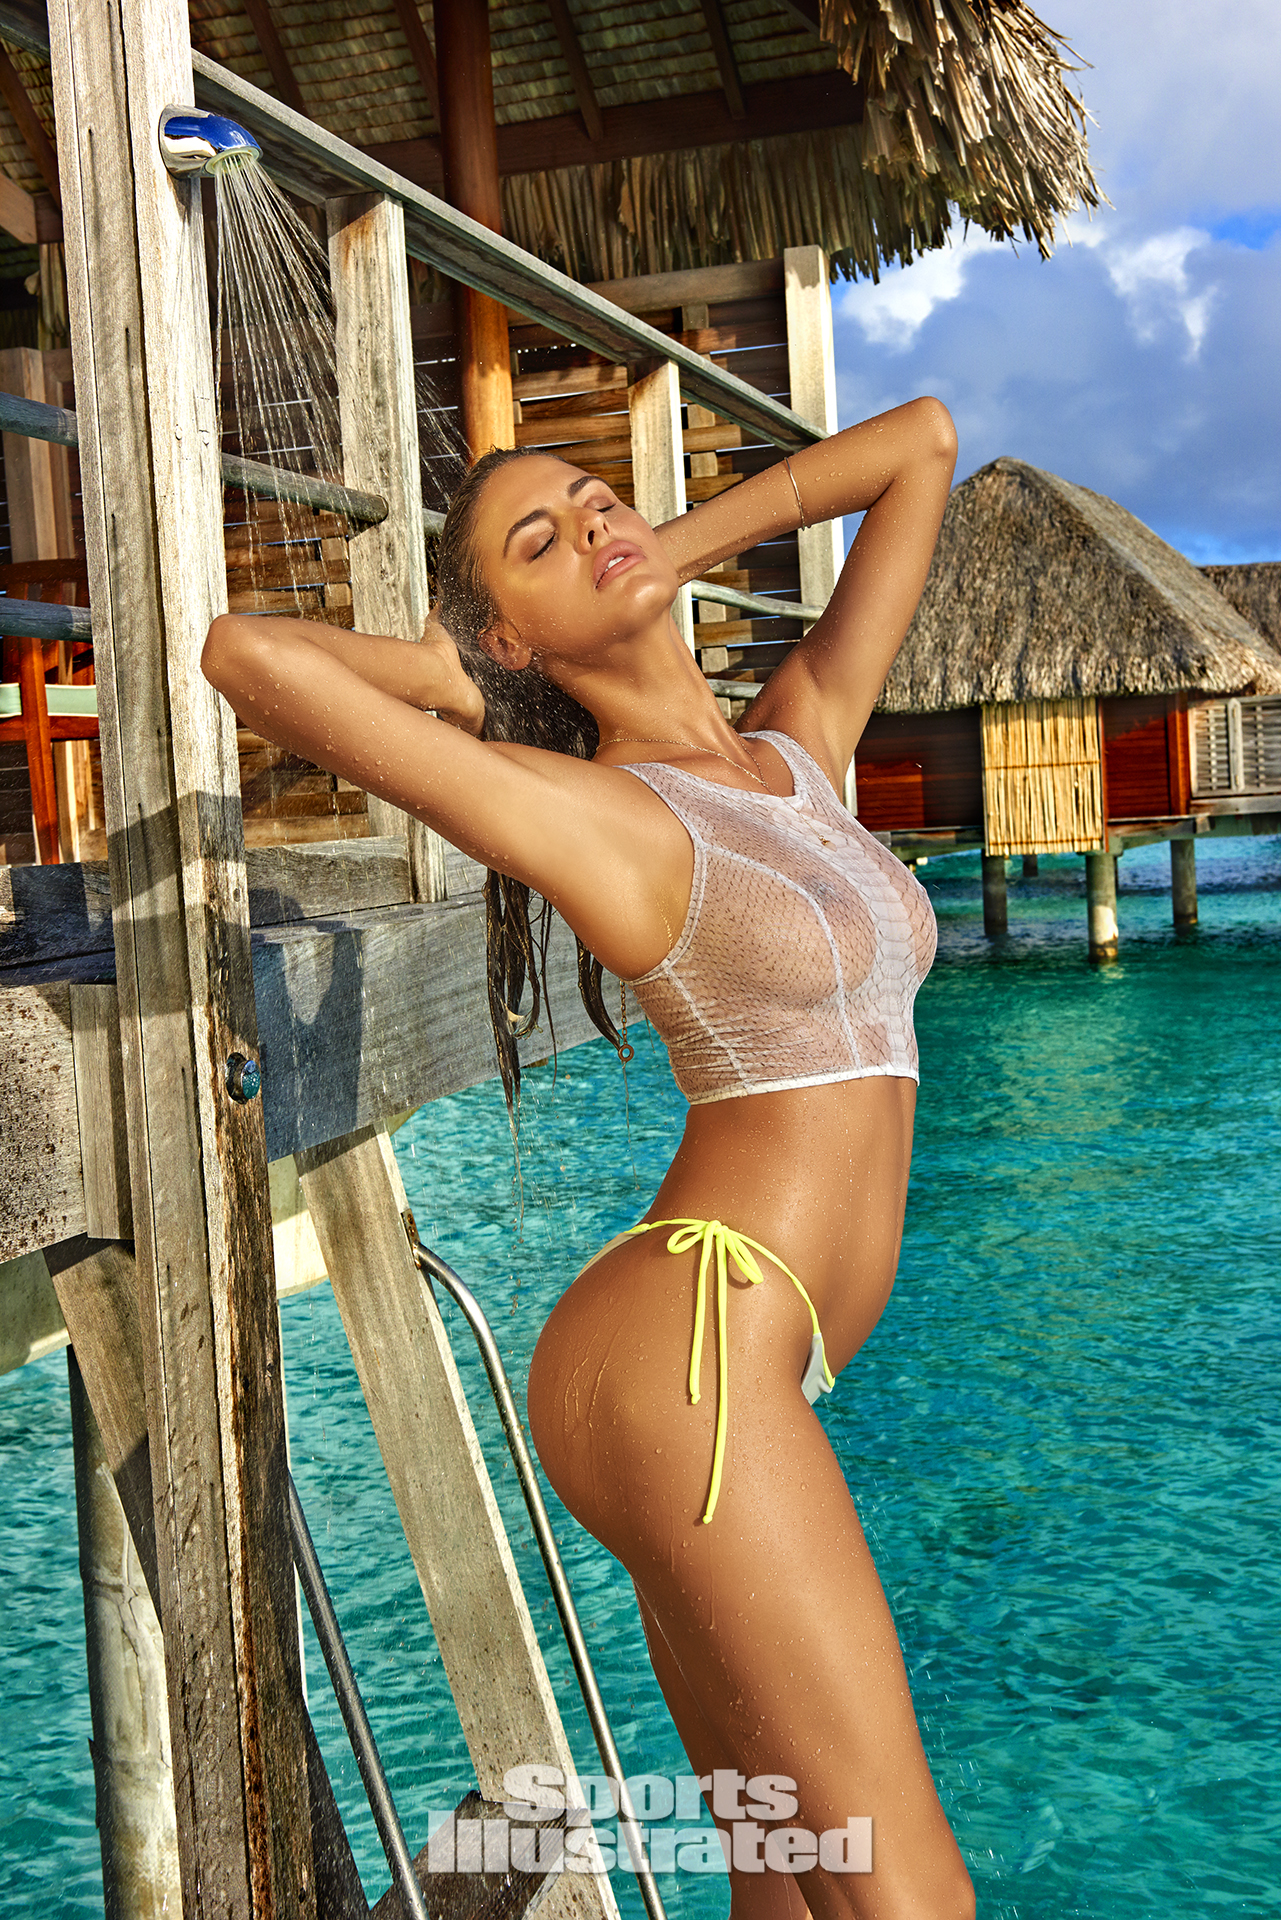 Bo Krsmanovic was photographed by Yu Tsai in the Islands of Tahiti. Top by eskini. Swimsuit by Kai Lani Swimwear.